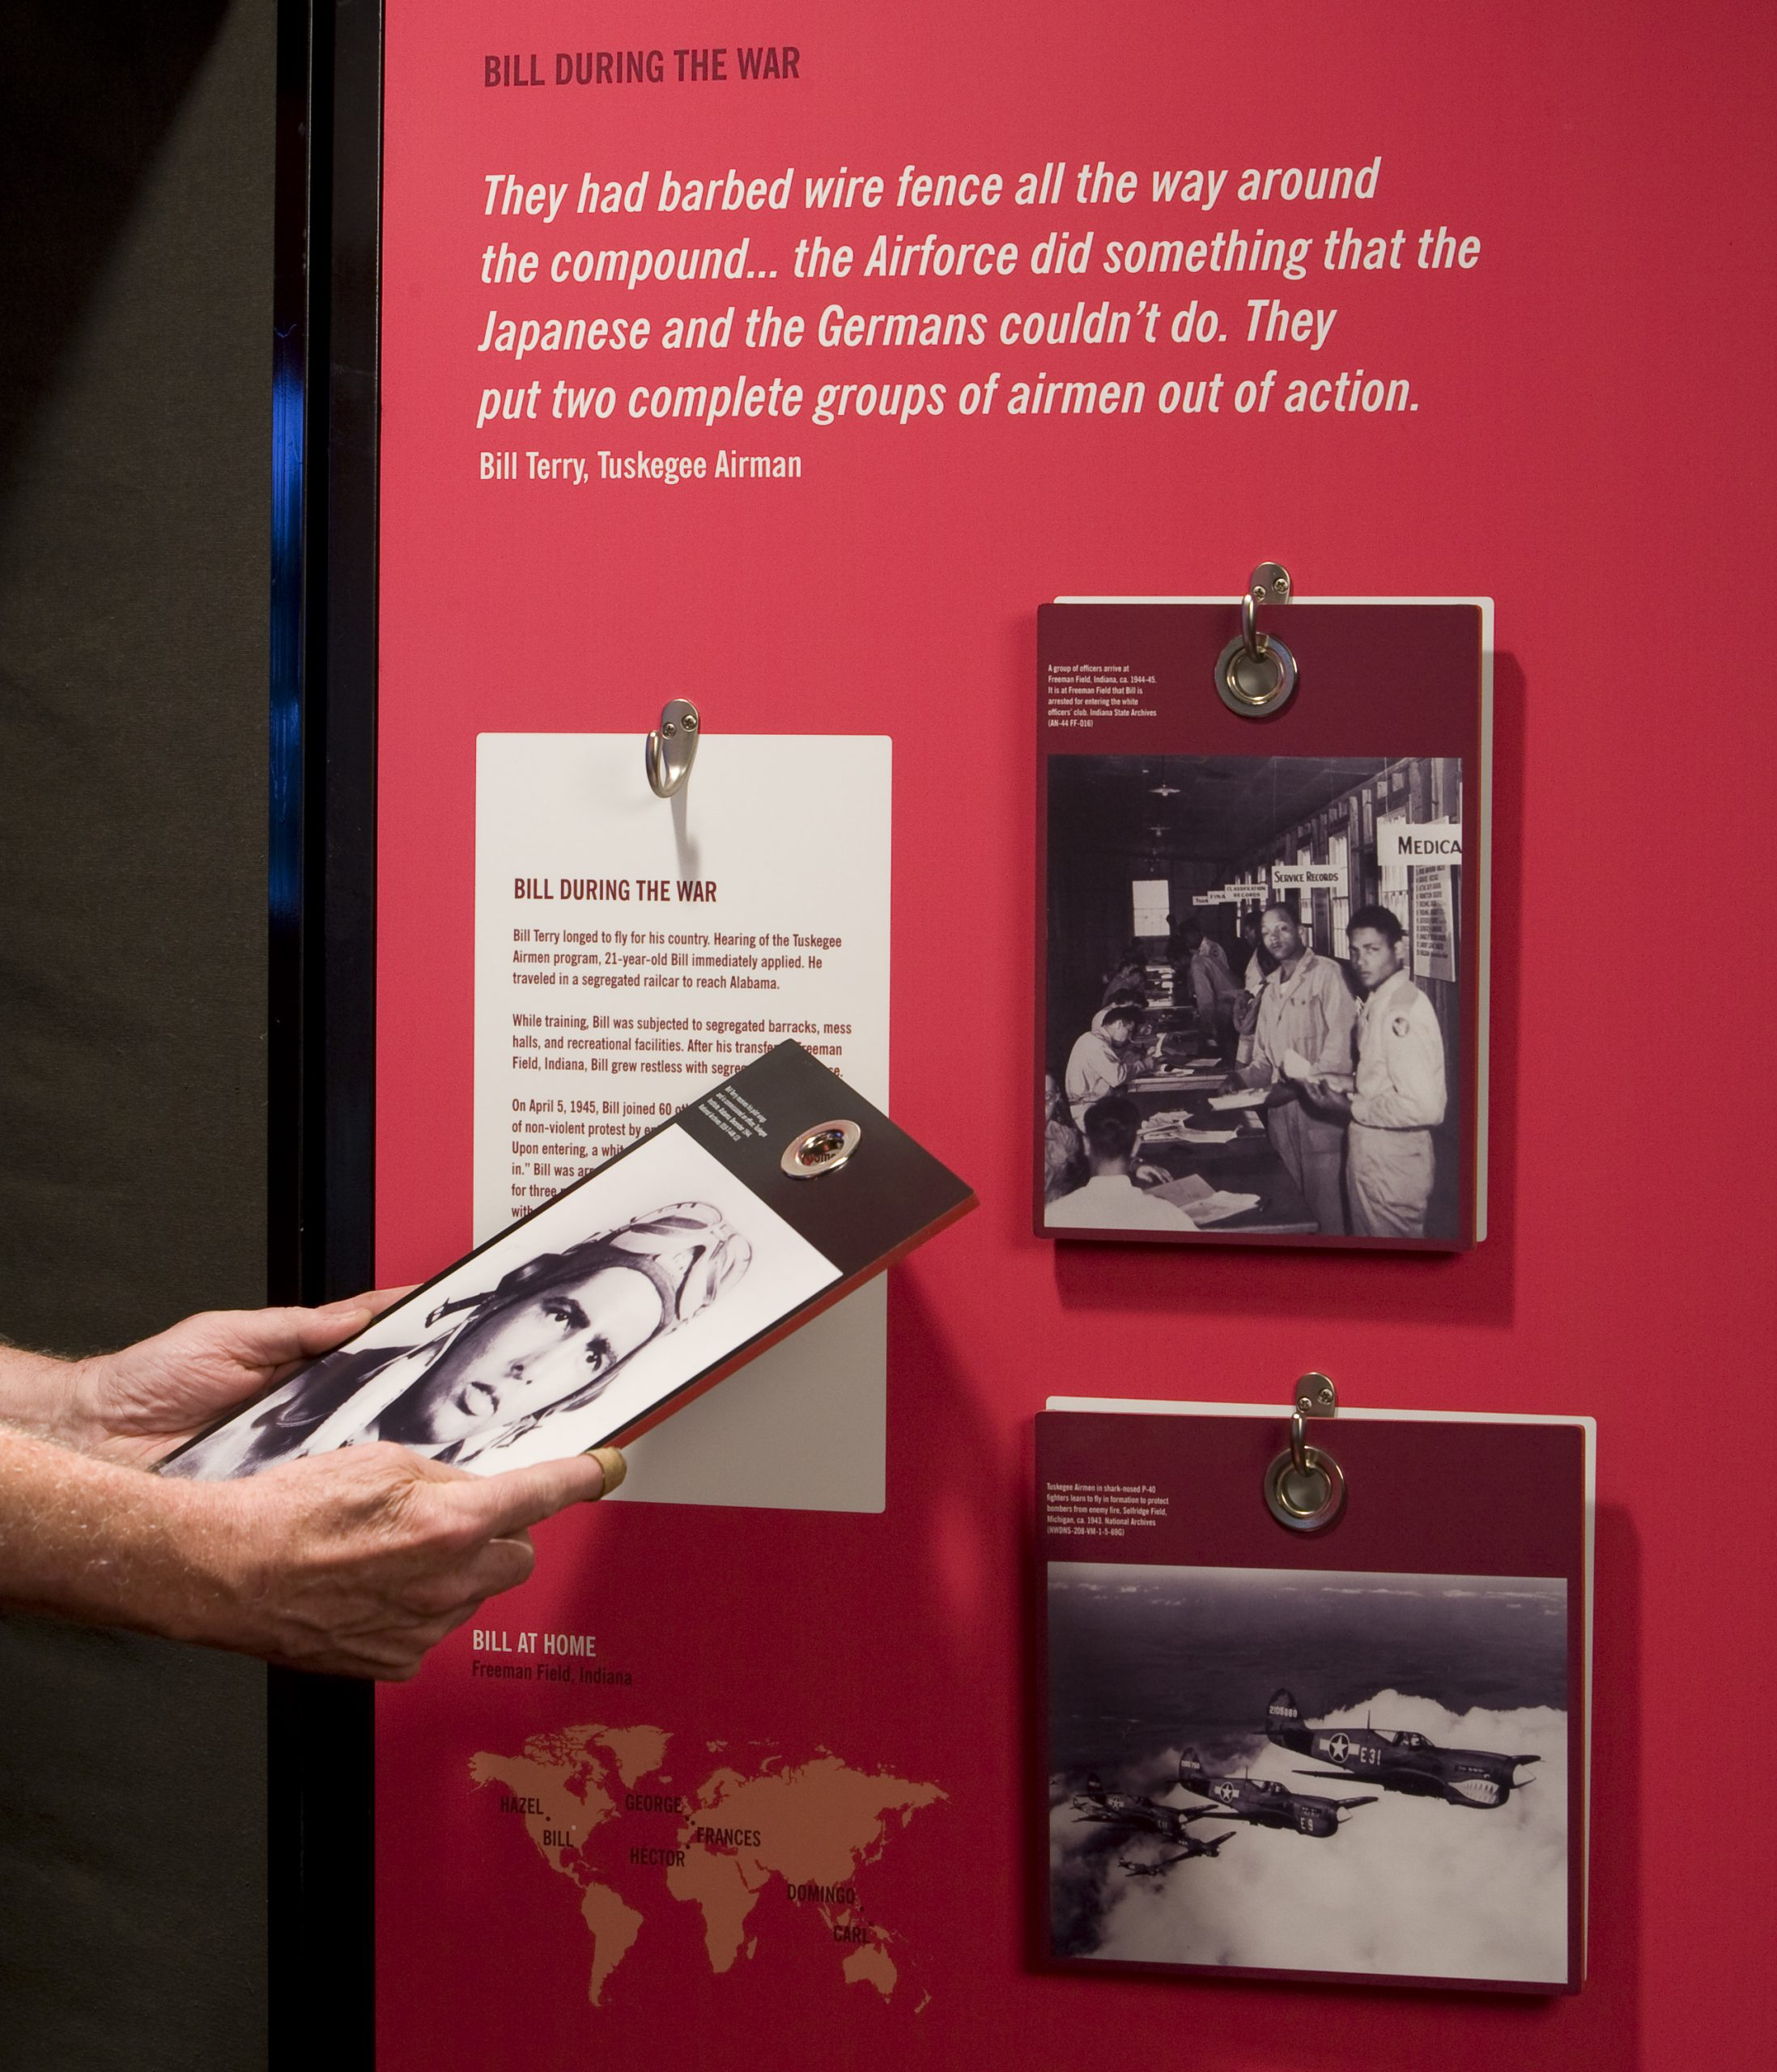 Project image 4 for Fighting for Democracy Traveling Exhibit, Japanese American National Museum